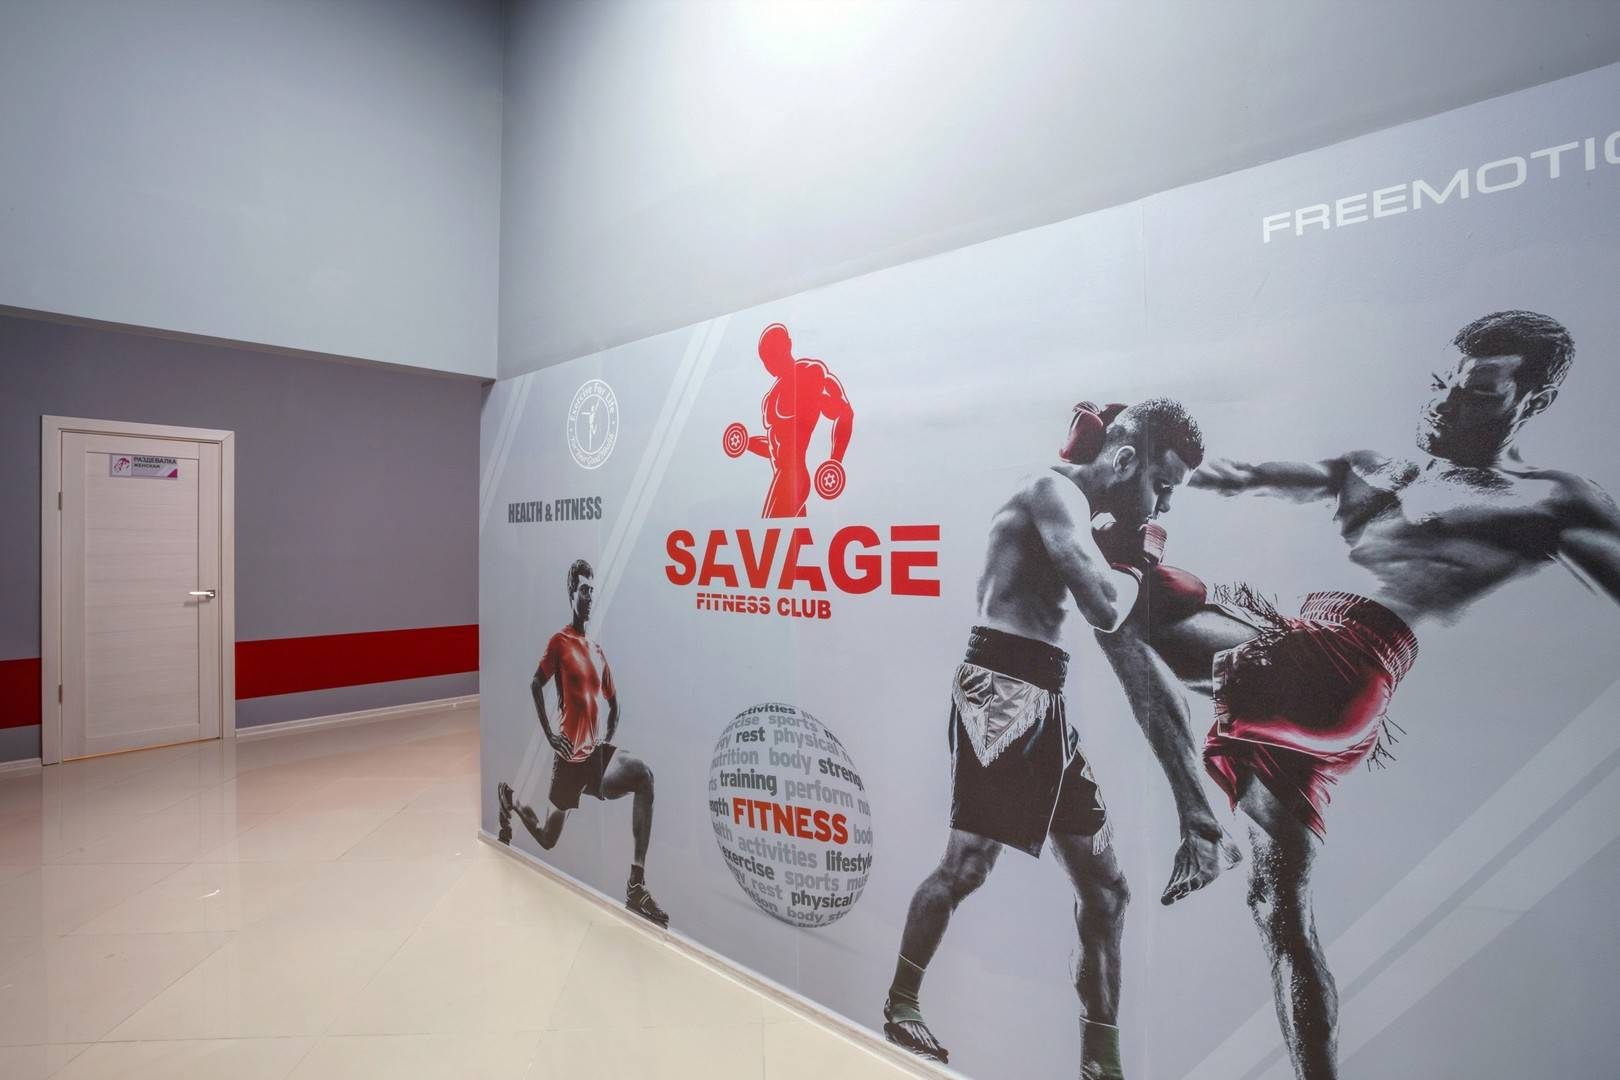 SAVAGE FITNESS